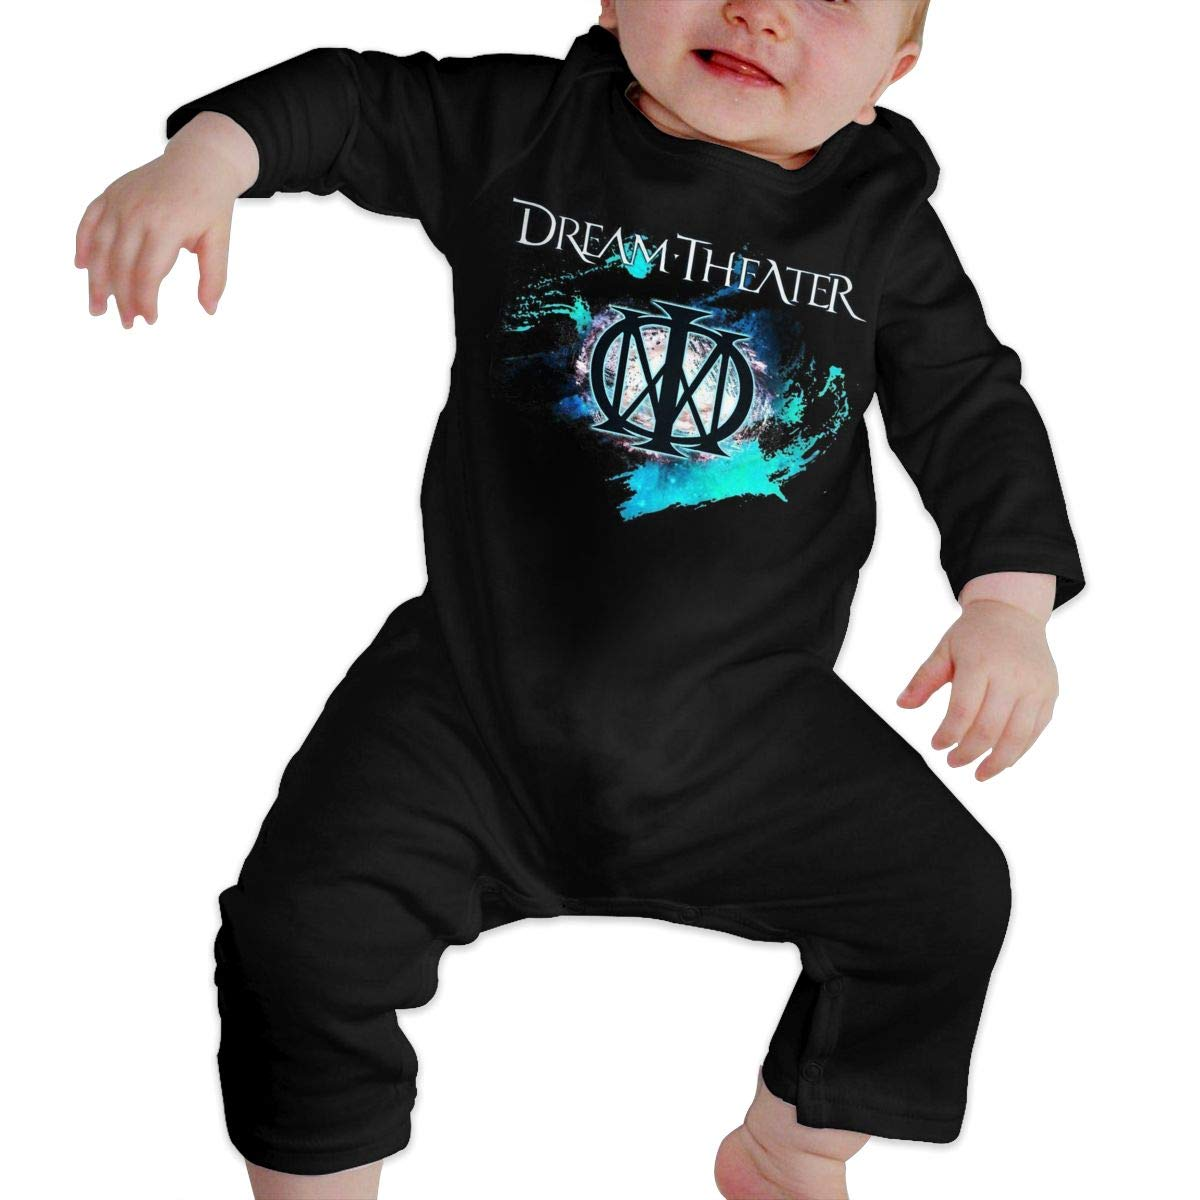 Fional Infant Long Sleeve Romper Dream-Theater Newborn Babys 0-24M Organic Cotton Jumpsuit Outfit